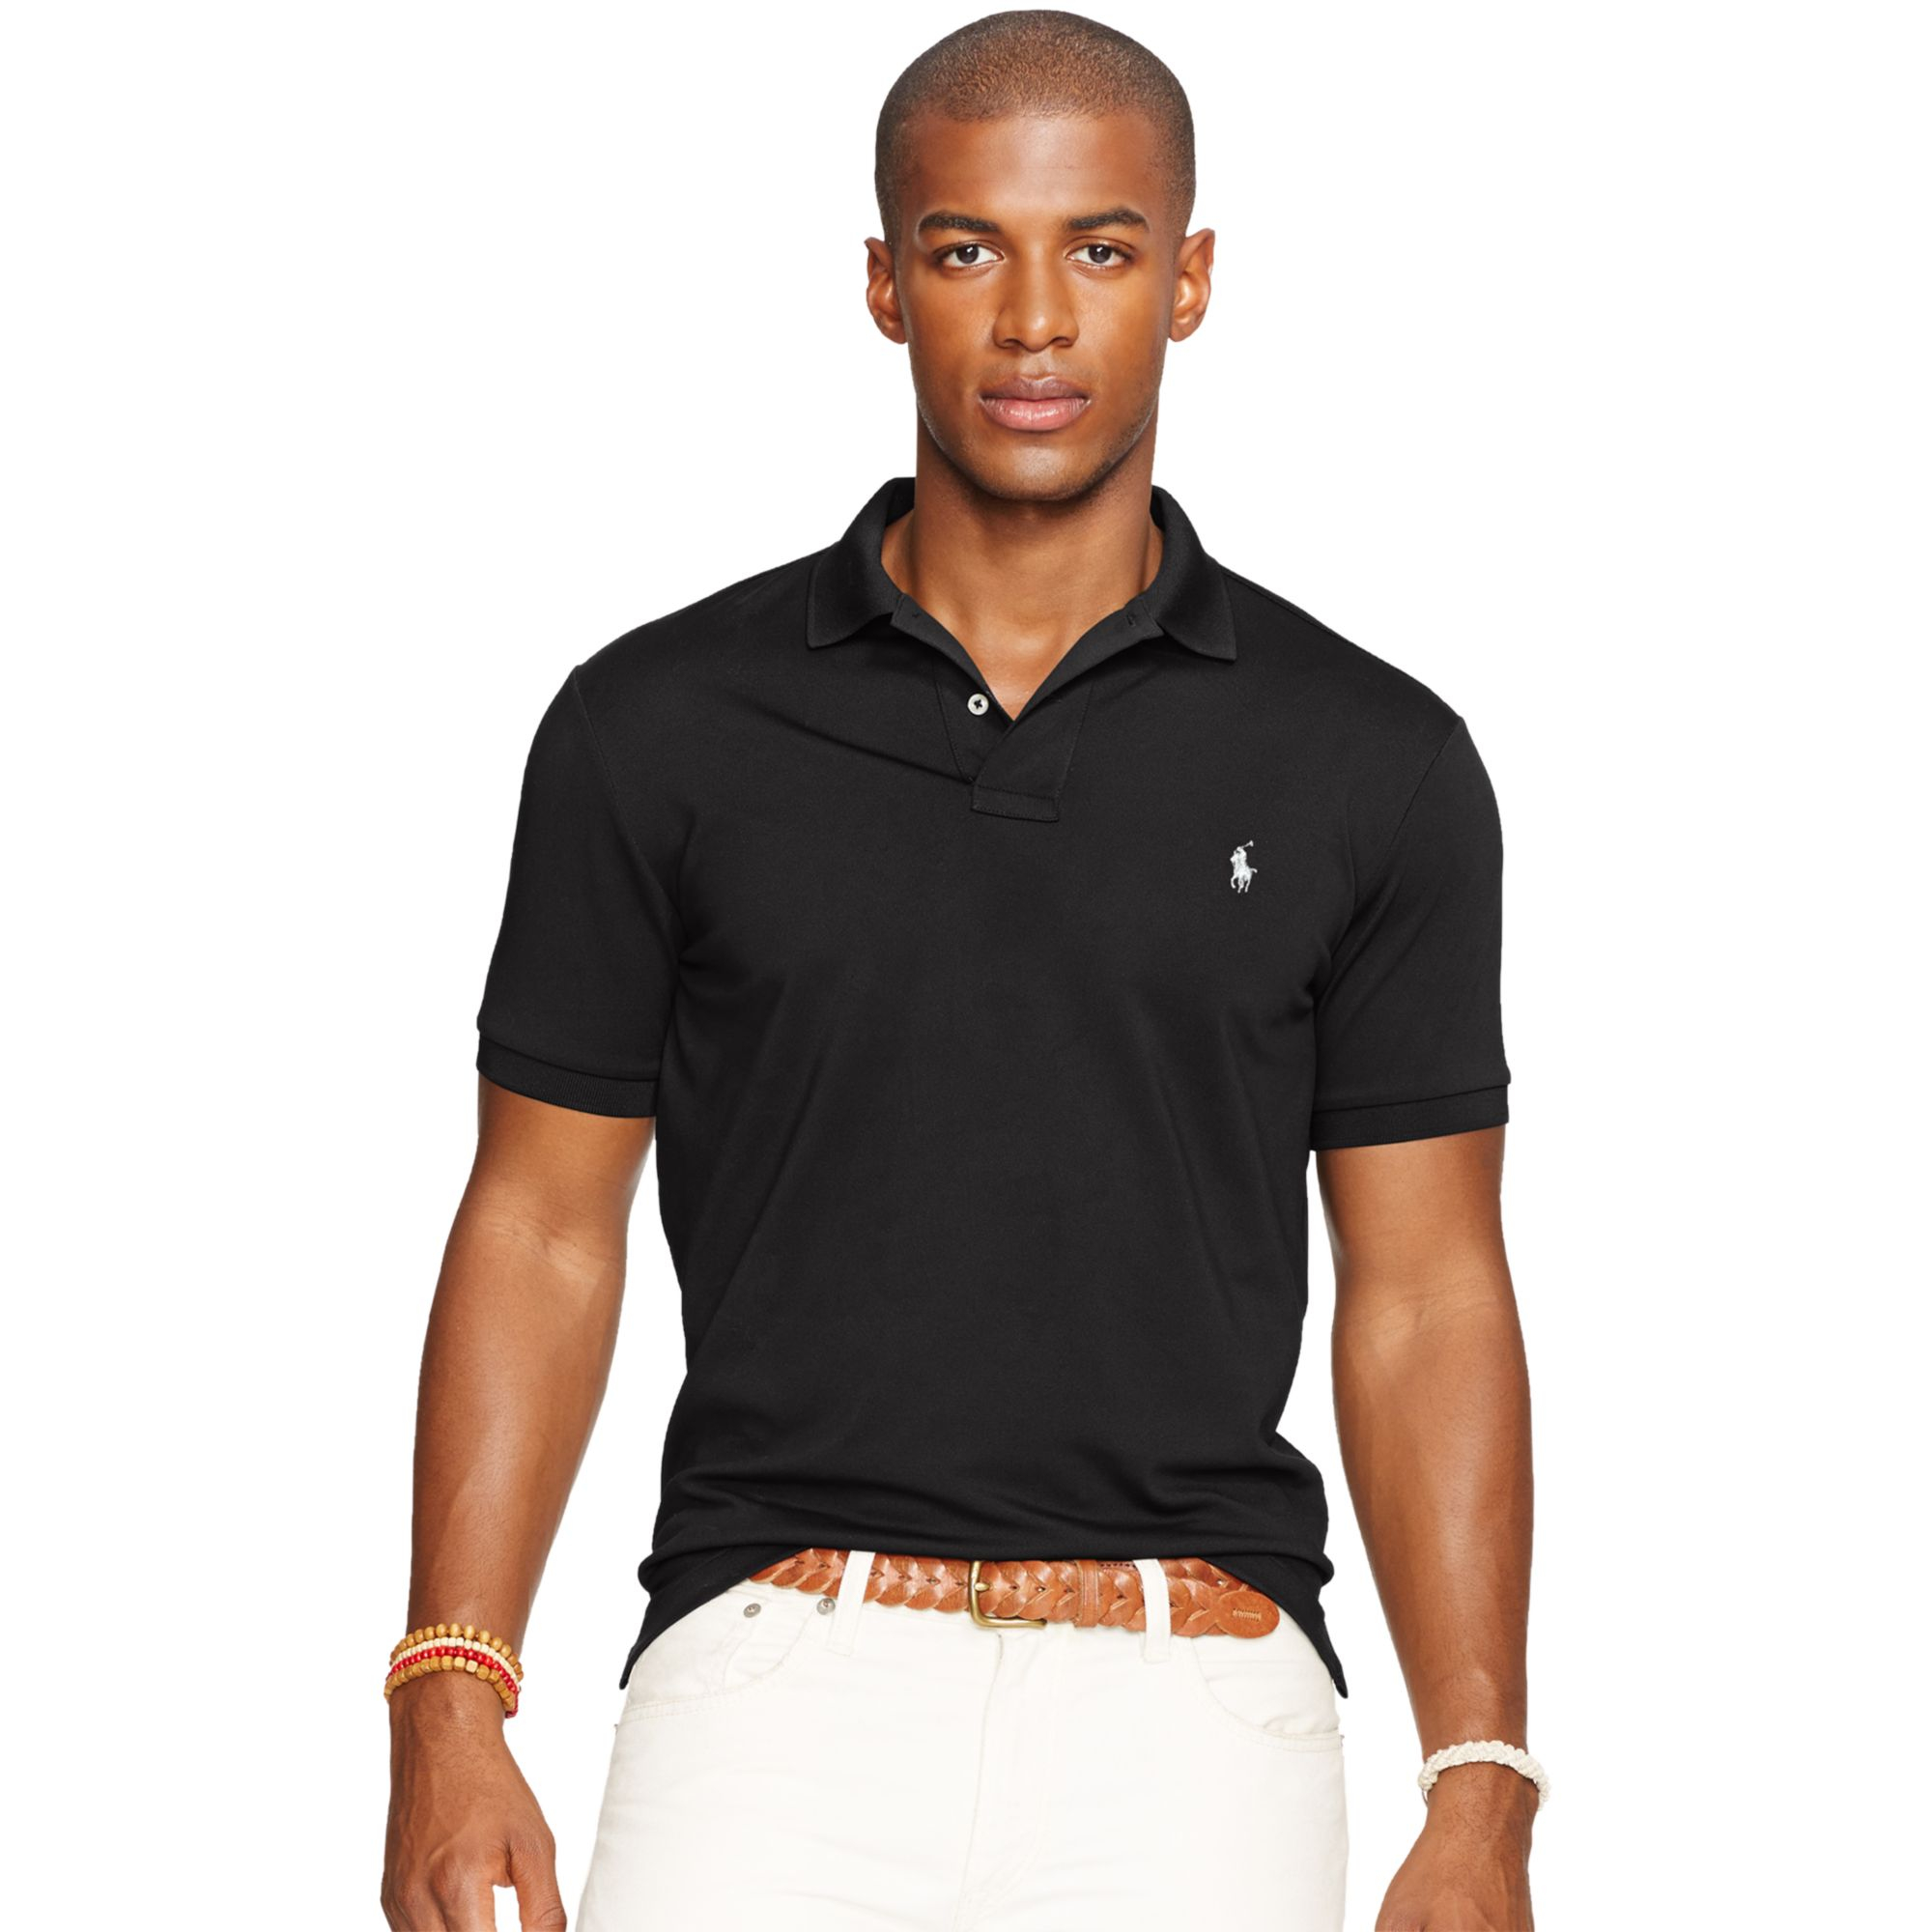 polo ralph lauren performance mesh polo shirt in black for men polo black lyst. Black Bedroom Furniture Sets. Home Design Ideas